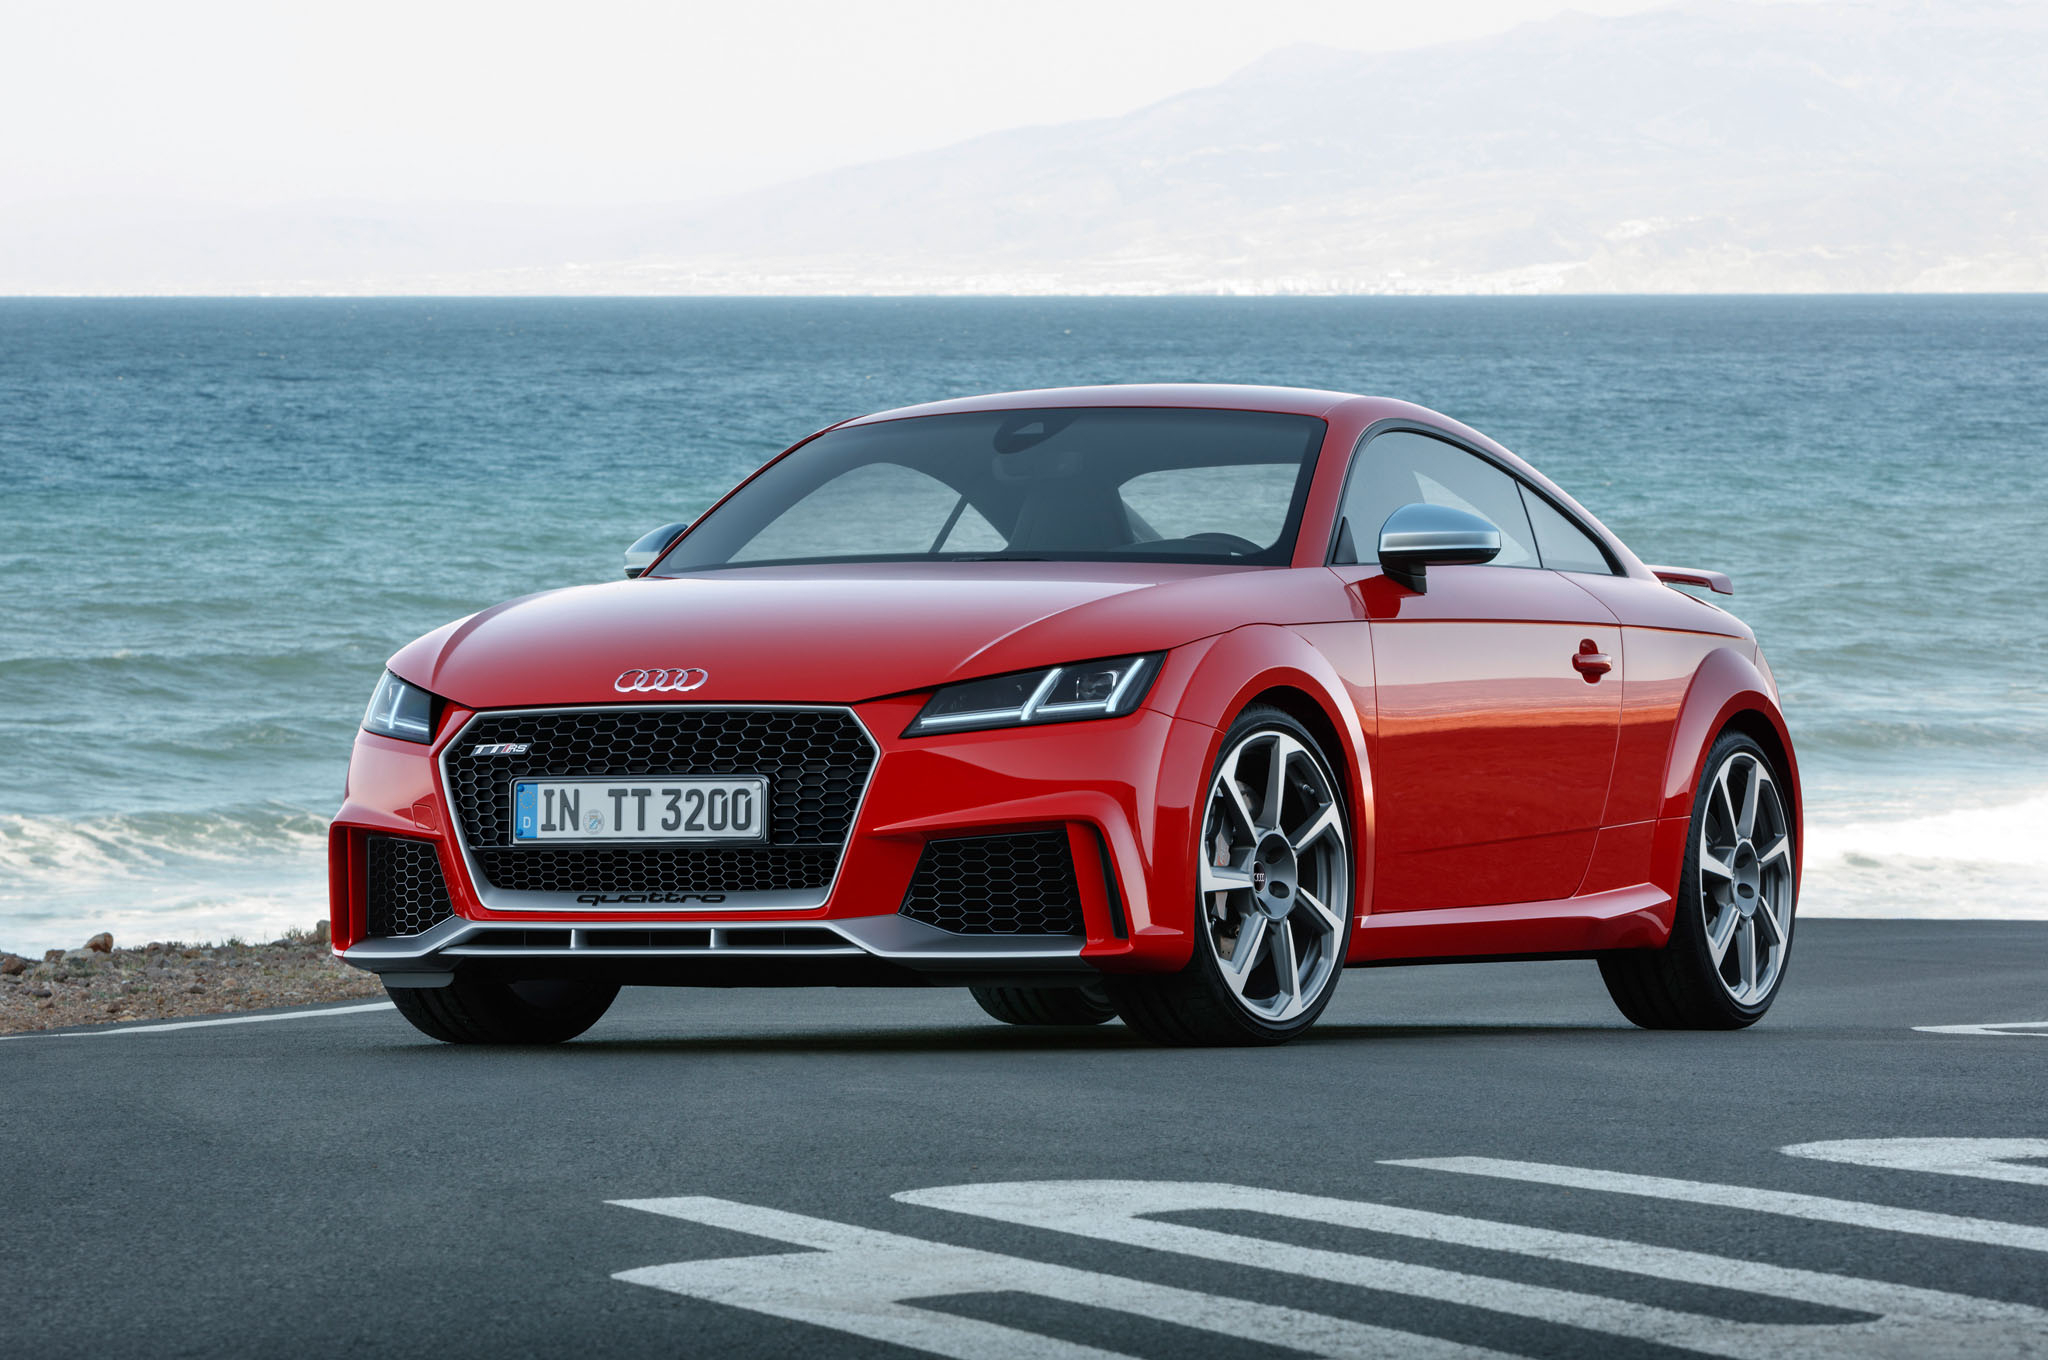 2017 Audi TT RS Roadster High Resolution Wallpapers ...